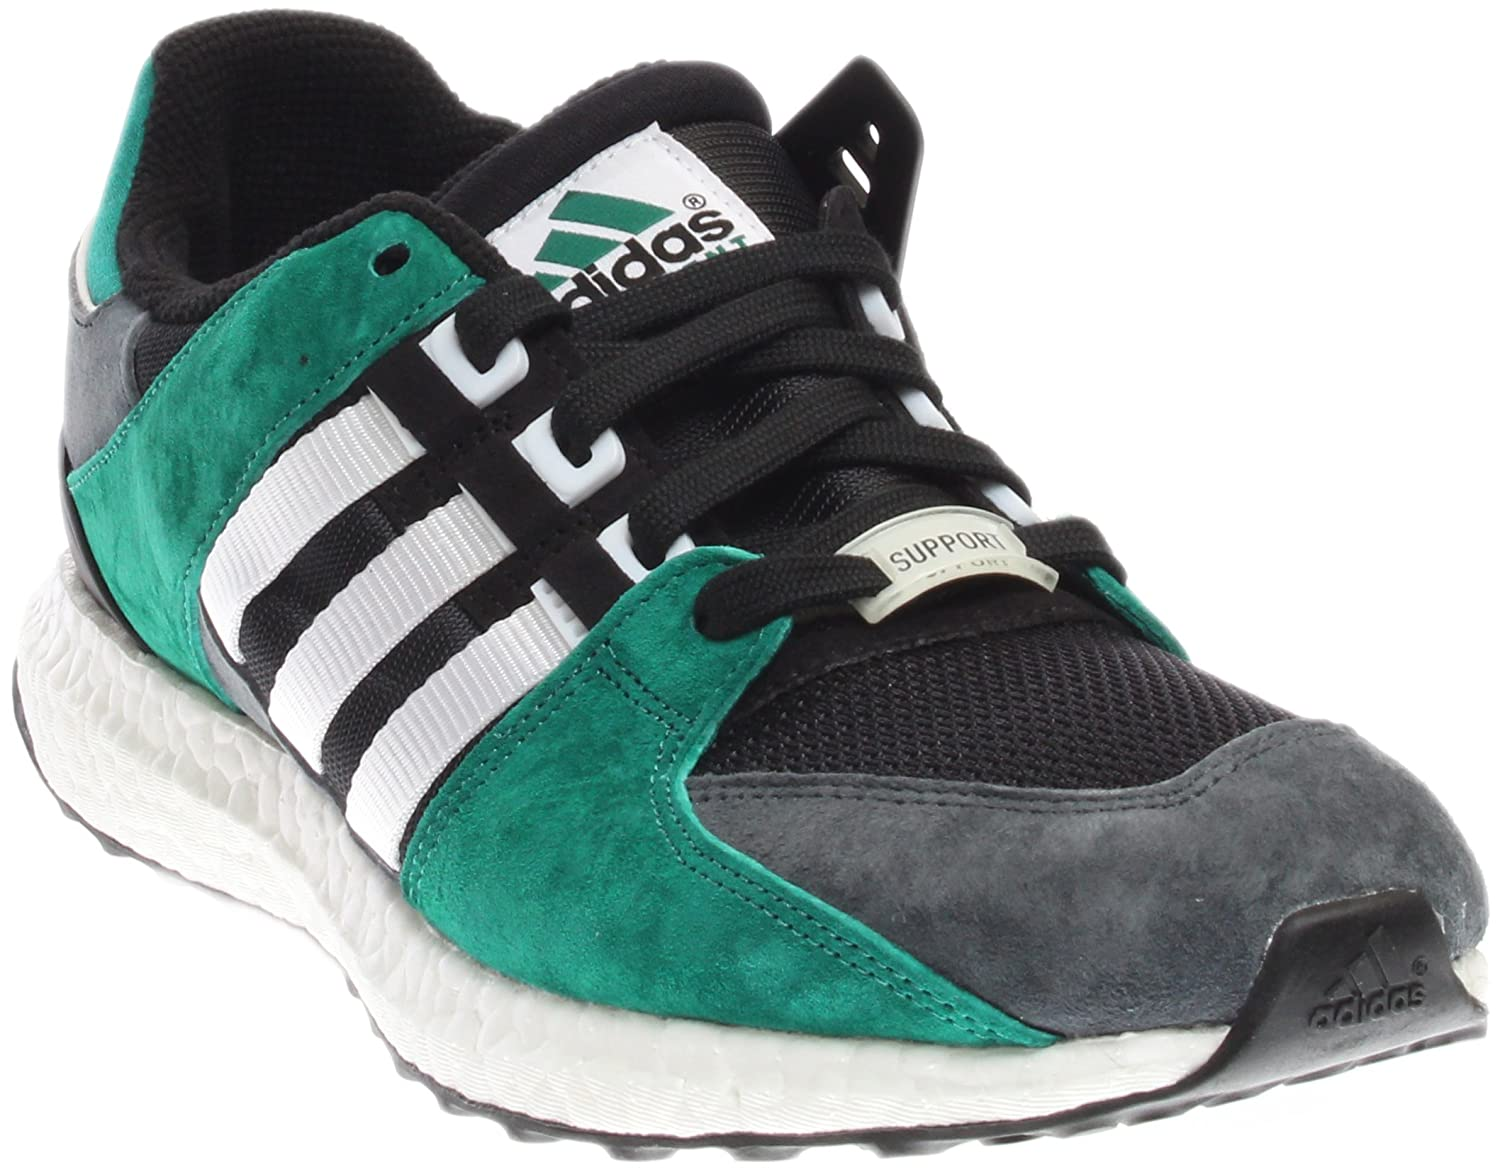 best service 82cfa 11769 adidas EQT Support 93/16